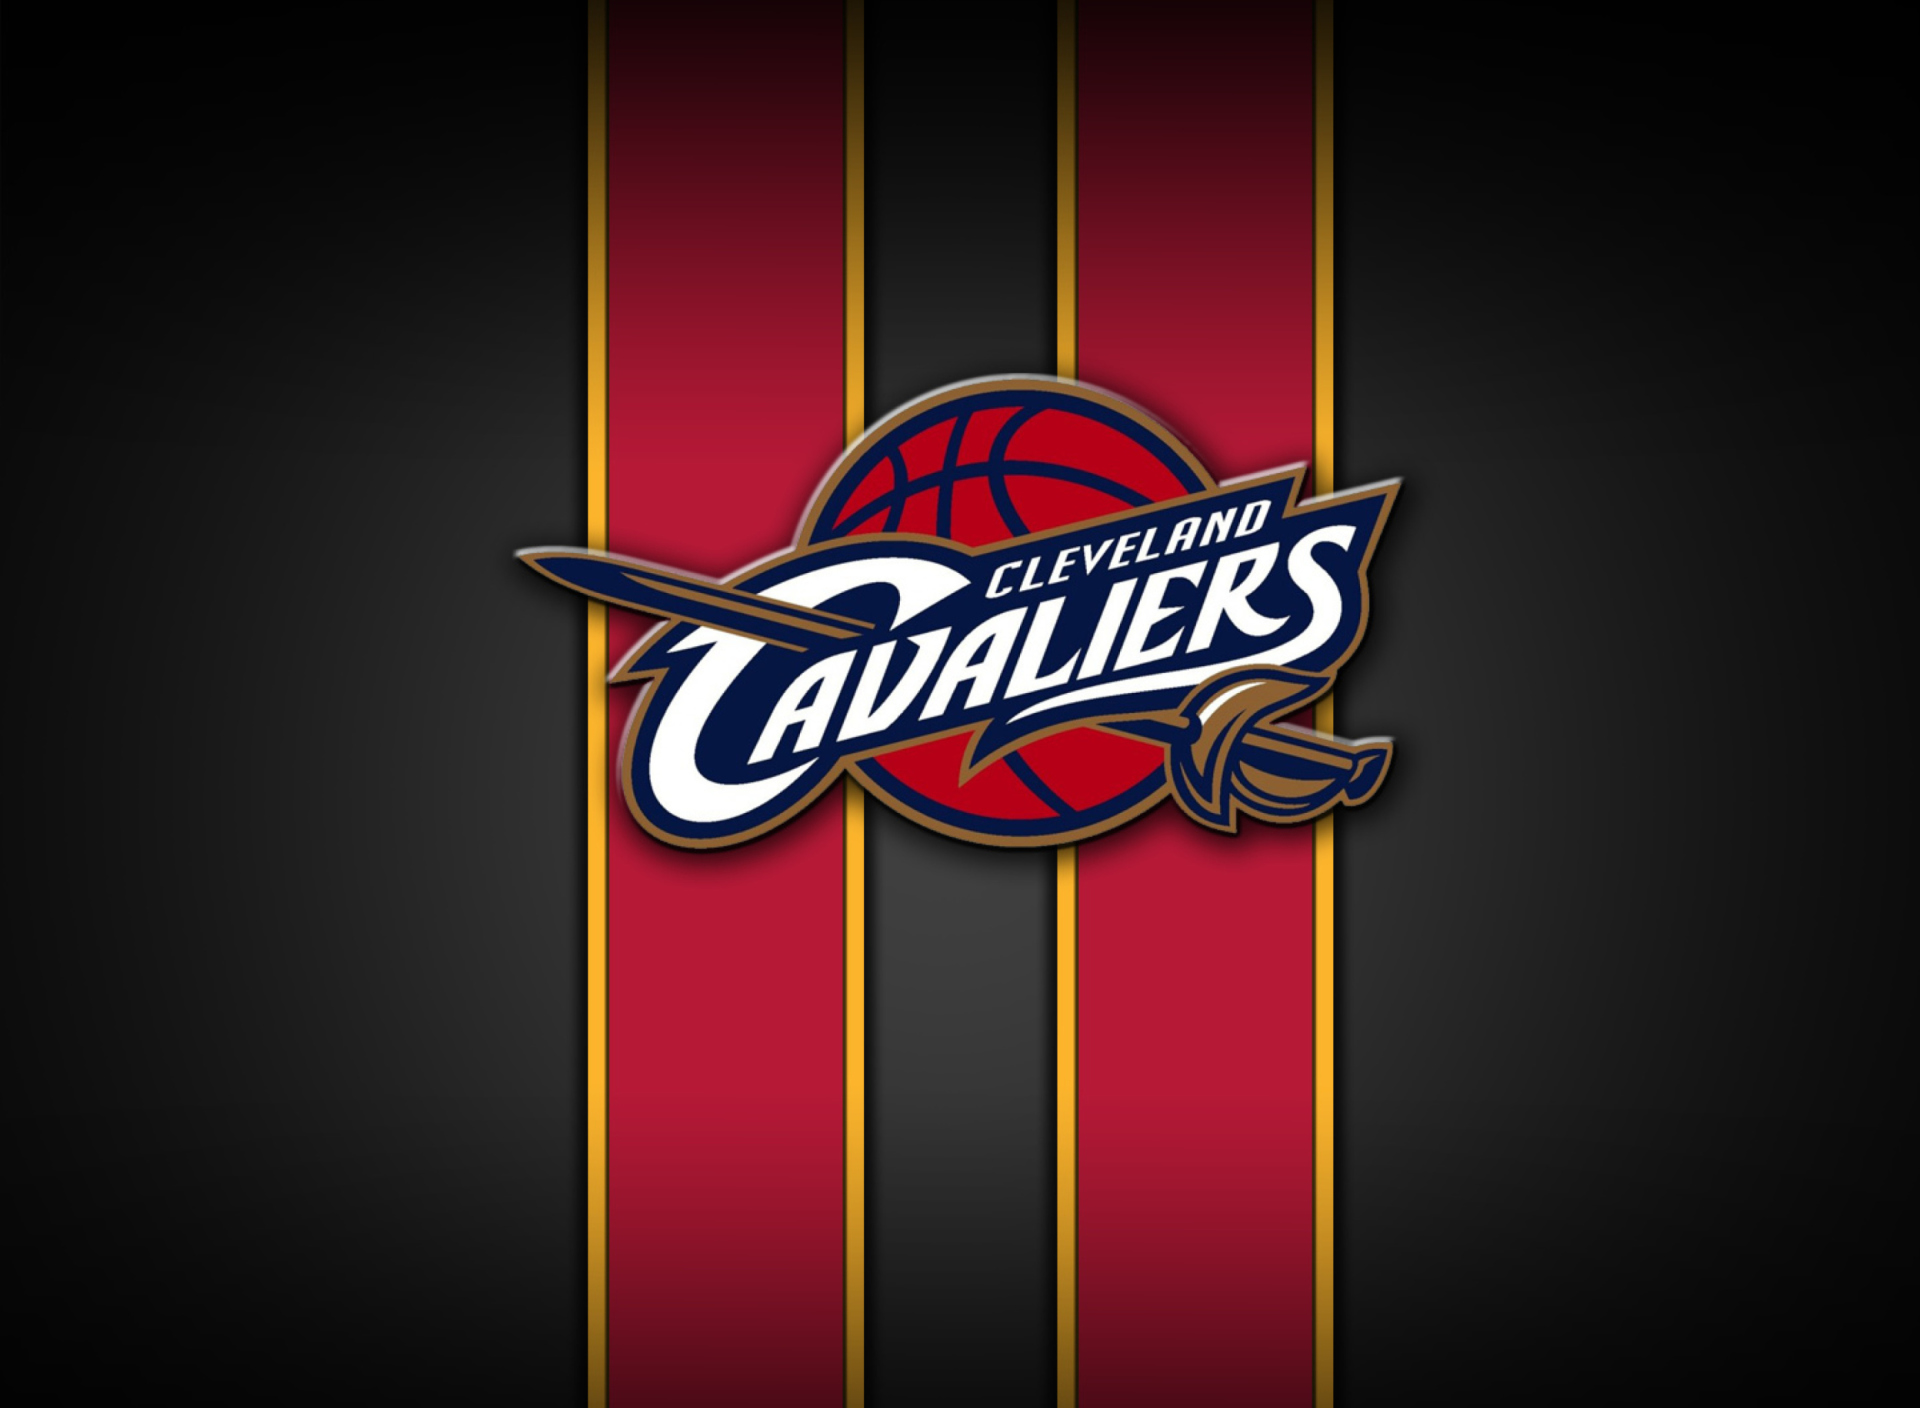 Cleveland cavaliers hd wallpaper background image - Cleveland cavaliers wallpaper ...